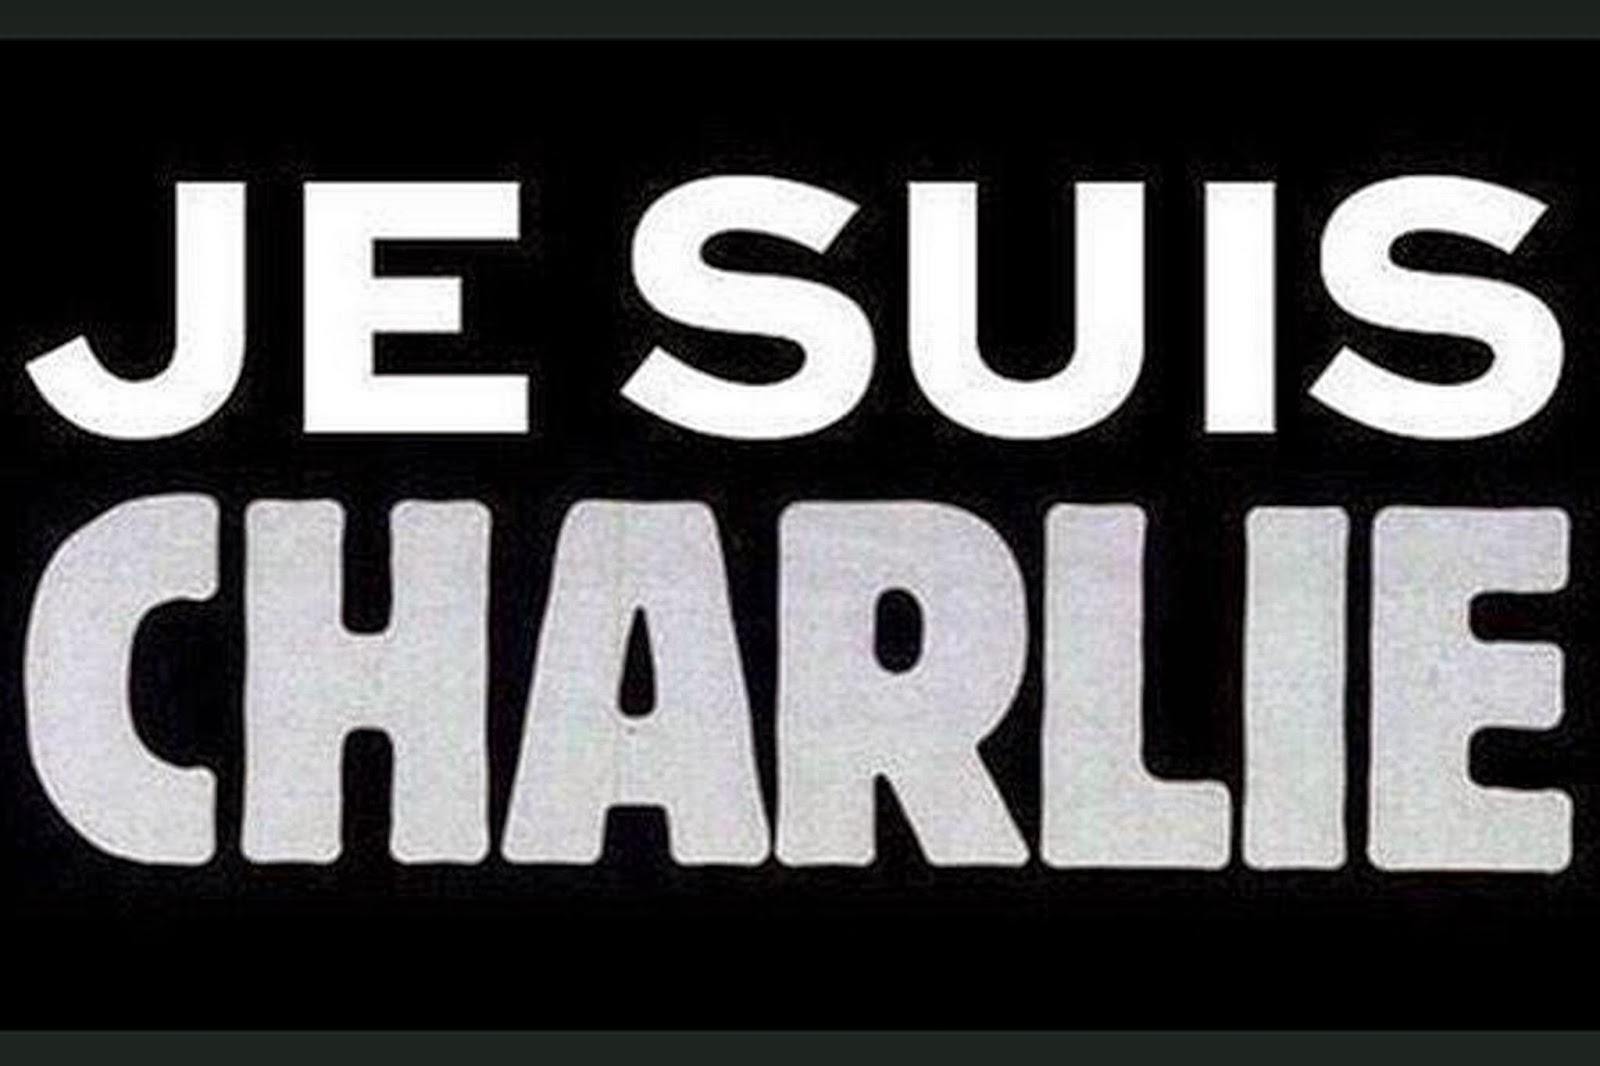 http://www.mirror.co.uk/news/world-news/je-suis-charlie-trends-people-4935086